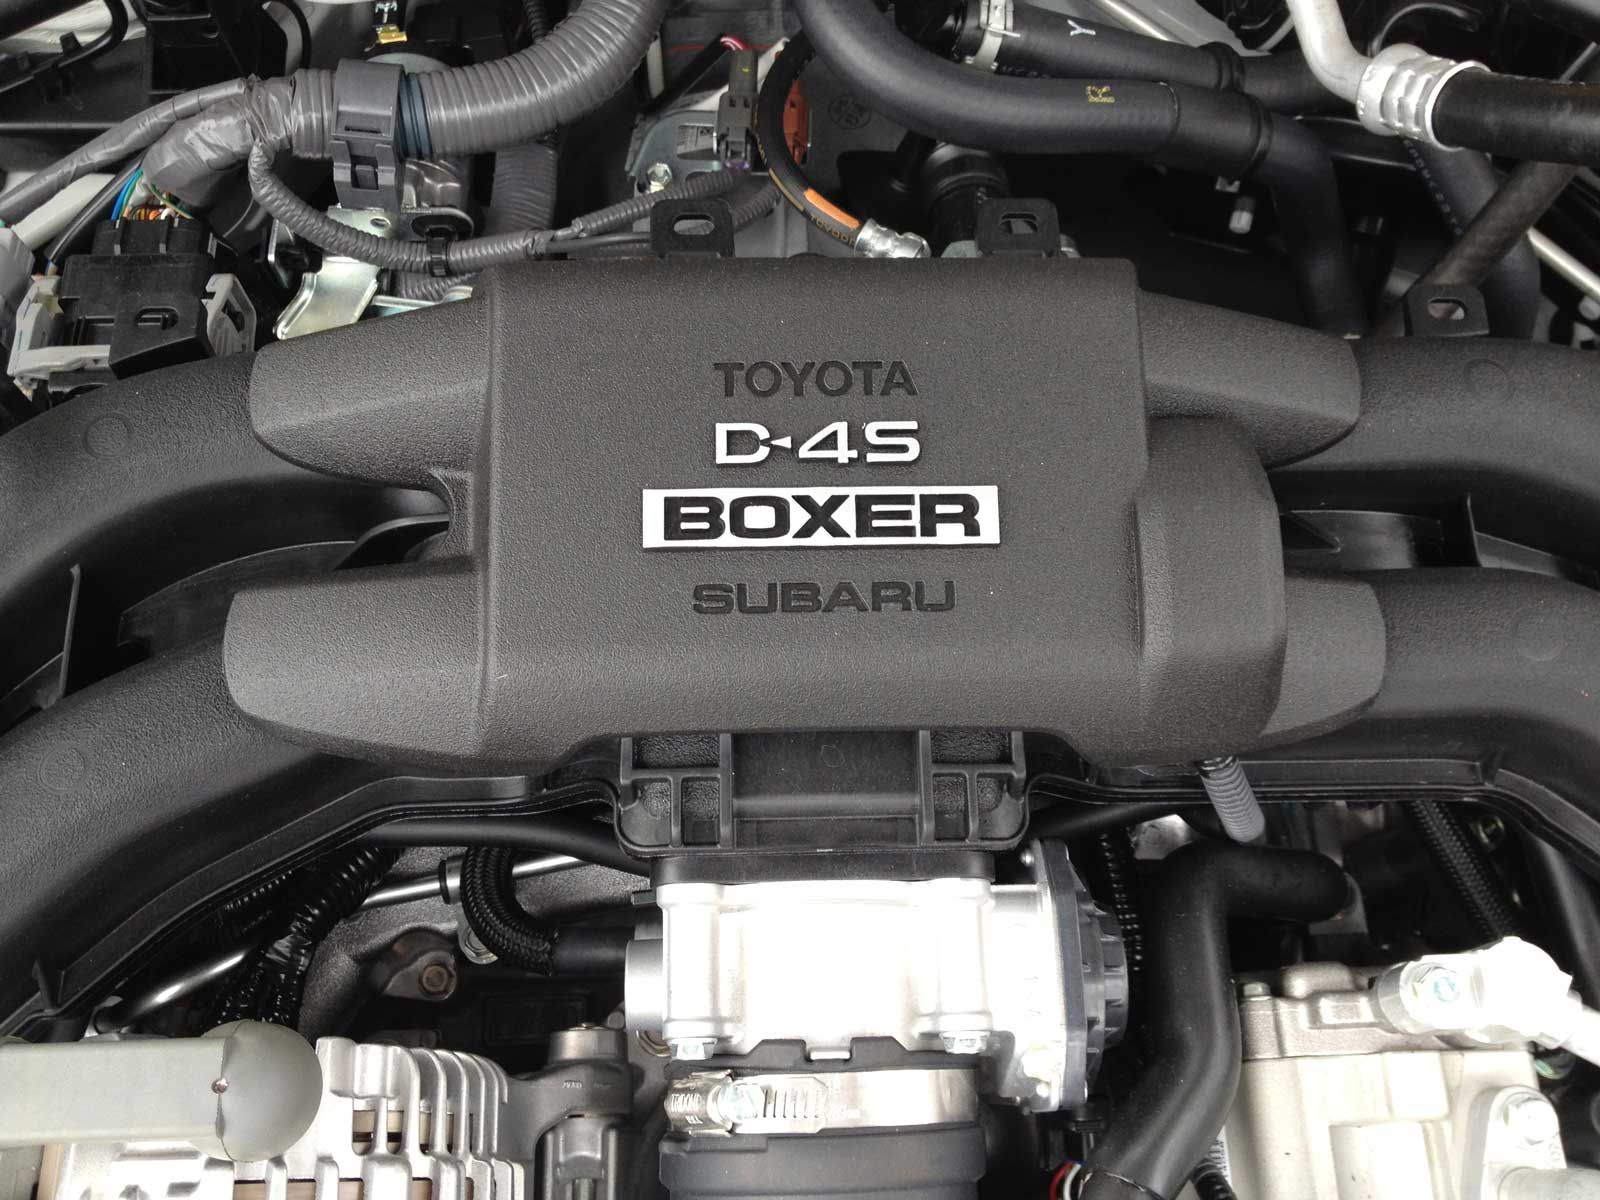 Subaru's 2.0L horizontally-opposed 4-cylinder engine topped by Toyota's D4-S